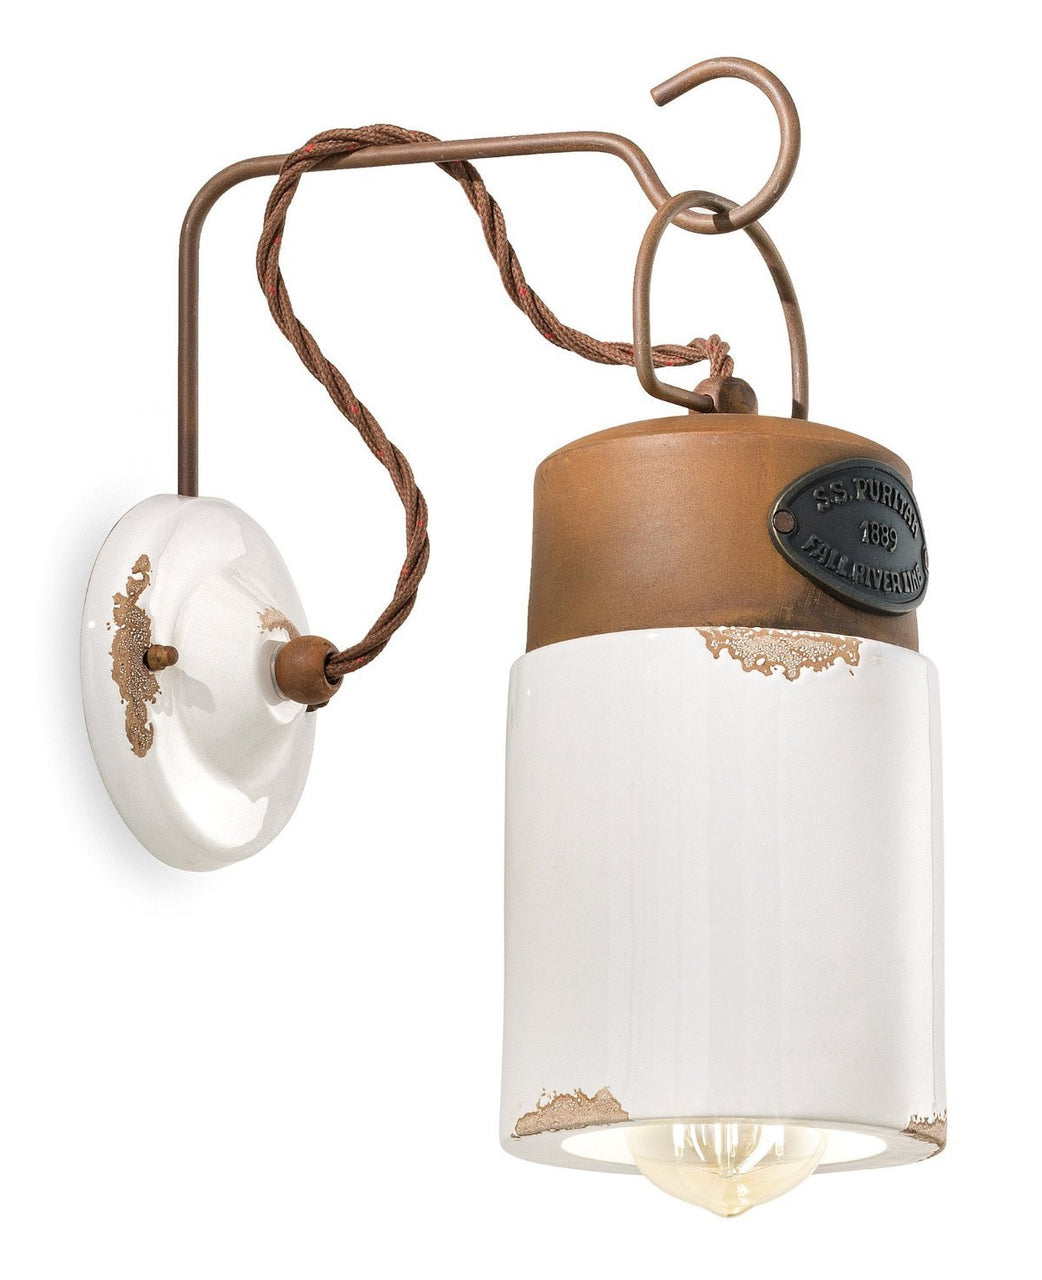 Ferroluce Industrial Wall Light C1621 | touchGOODS